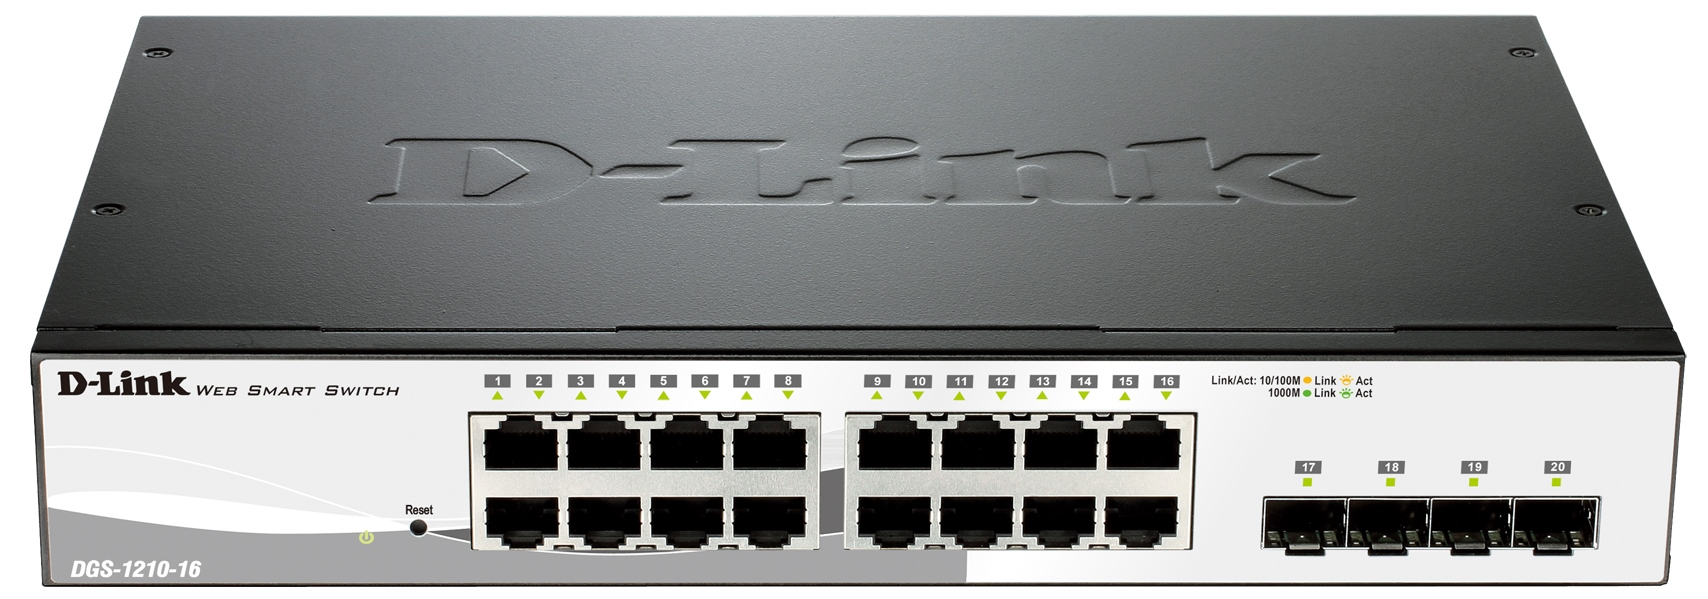 D-Link DGS-1210-16 16-port 10/100/1000 Gigabit Smart Switch including 4 Combo 1000BaseT/SFP